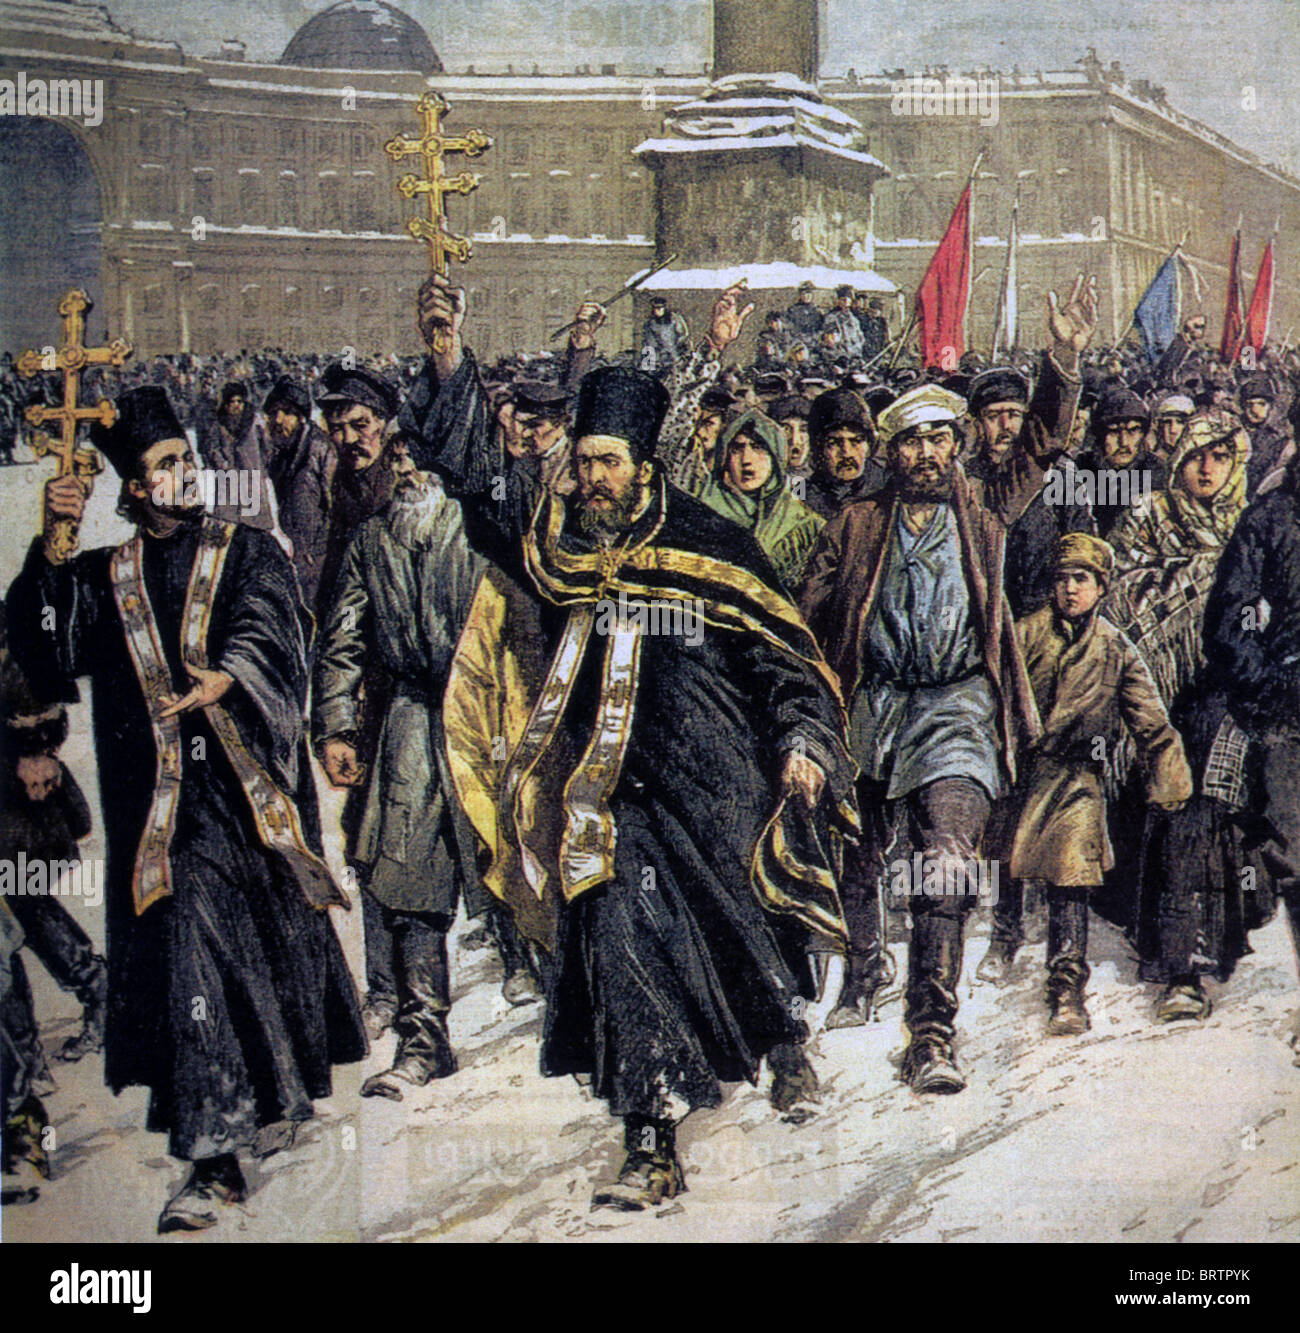 account of the russian revolution of 1905 The centenary of the russian revolution of 1905 comes as historians are re-evaluating the late tsarist period, and as recently available local archives are throwing new light on the revolutionary year.